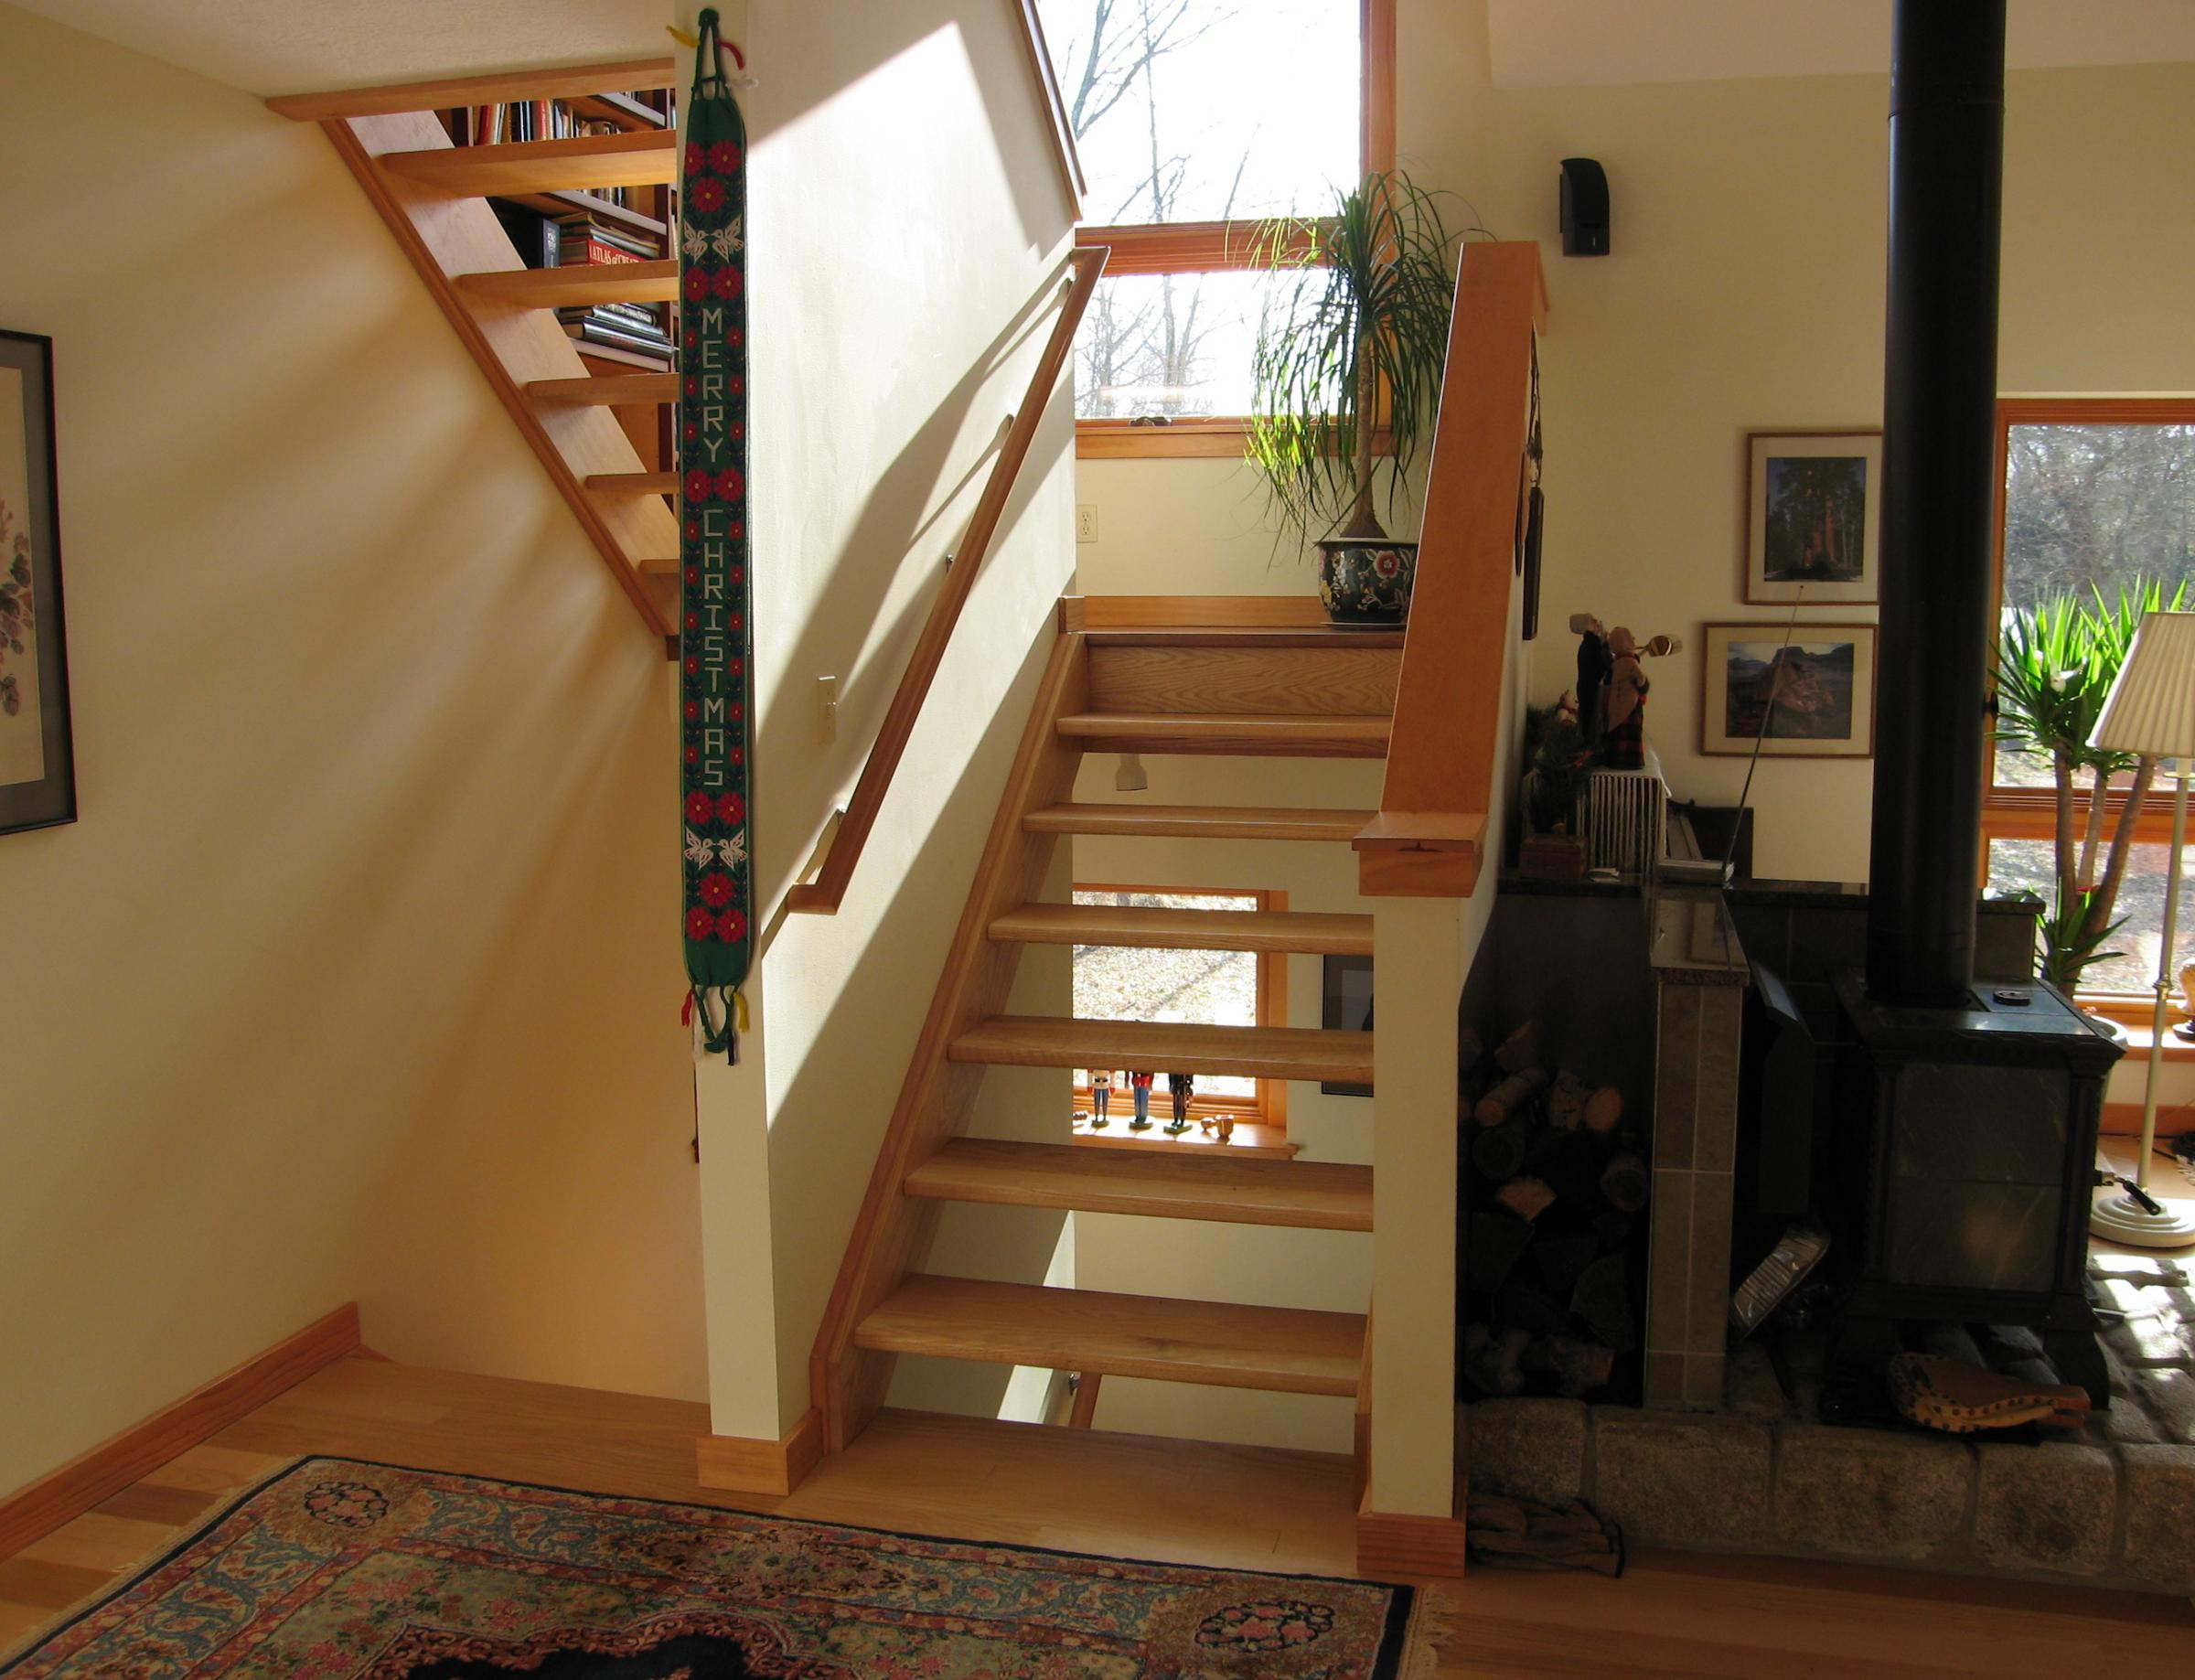 Trail Magic open riser stairway to study; a energy positive energy home in Oberlin OH.